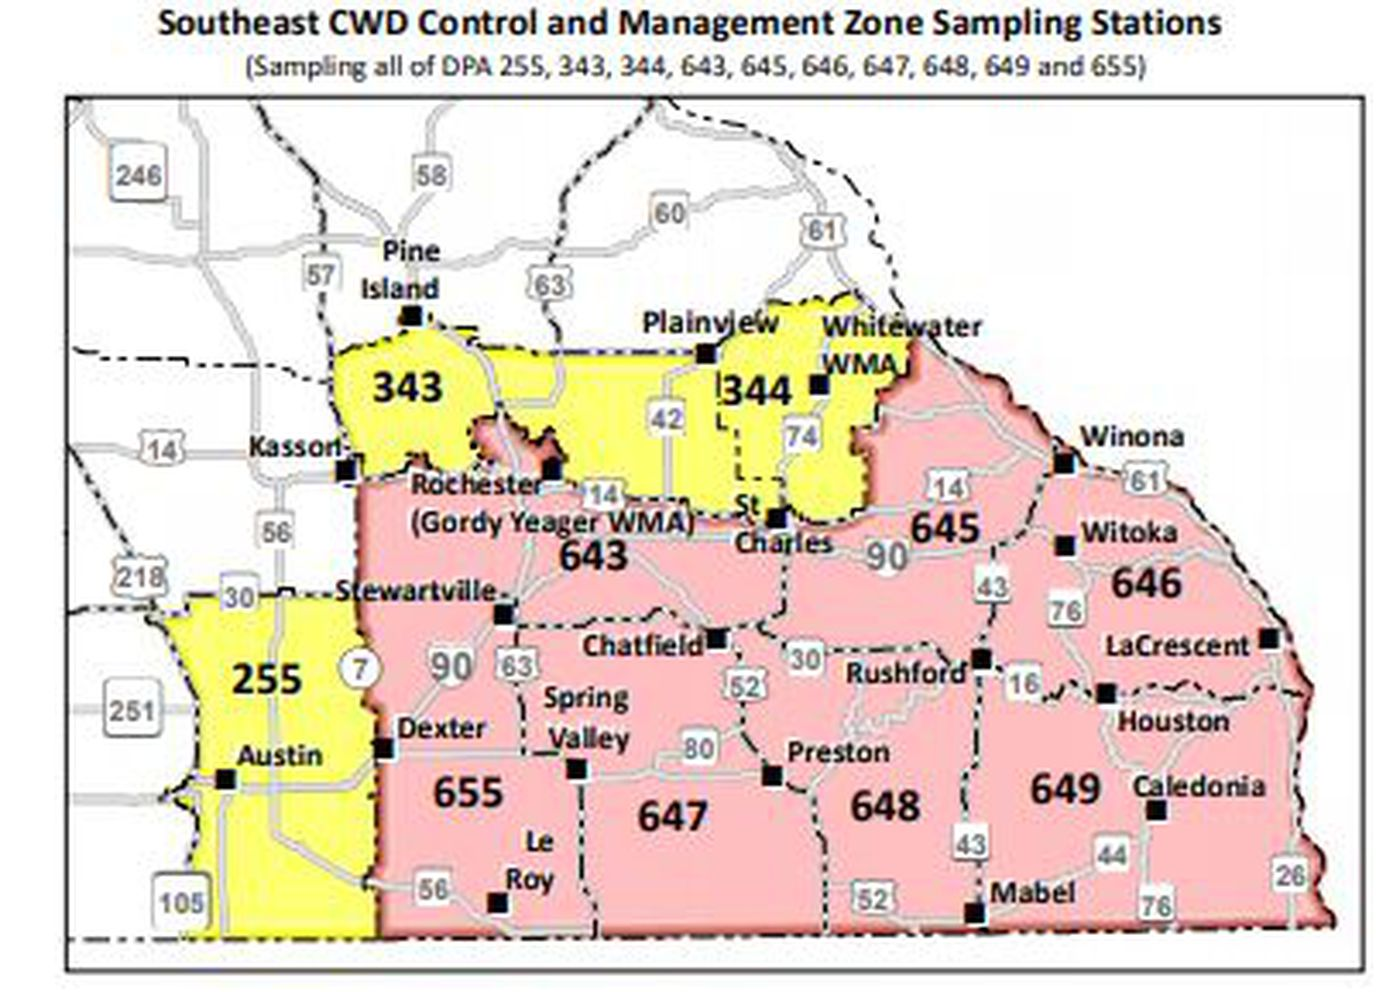 DNR hosts open houses to inform hunters on new regulations ... on map of wisconsin and minnesota, map of southeast fl, map of minnesota small towns, map of southeast cu, map of southeast mt, map of all regions, map of southeast bc, map of twin cities metro, map of iowa area, map of minneapolis suburbs, map of southeast asia, map of minnesota cities and towns, map of northeast iowa, map of south dakota and minnesota, map of northern minnesota cities, map of southeast ct, map of minneapolis/st. paul, map of southeast ak, map of mankato, city of winona mn,